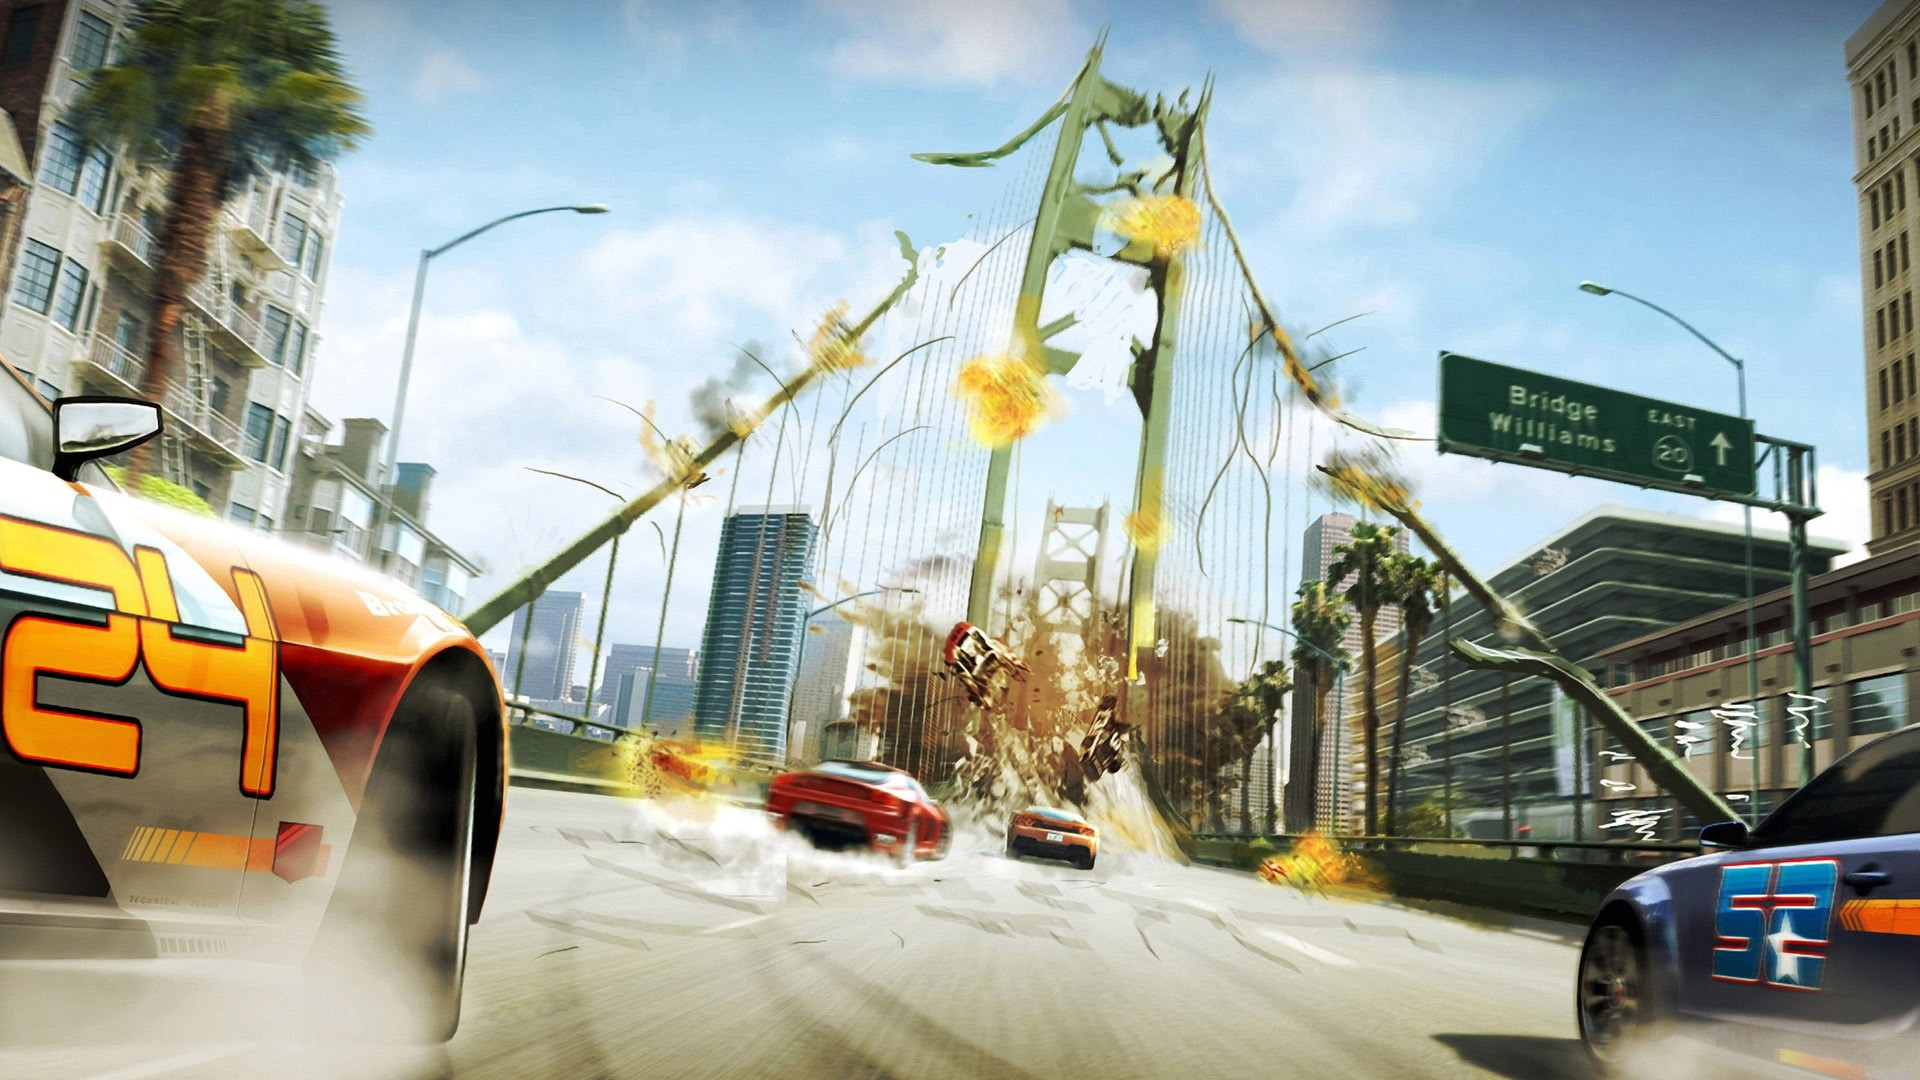 Iphone 5 Superman Wallpaper Burnout Paradise Race Wallpapers Hd Wallpapers Id 9836